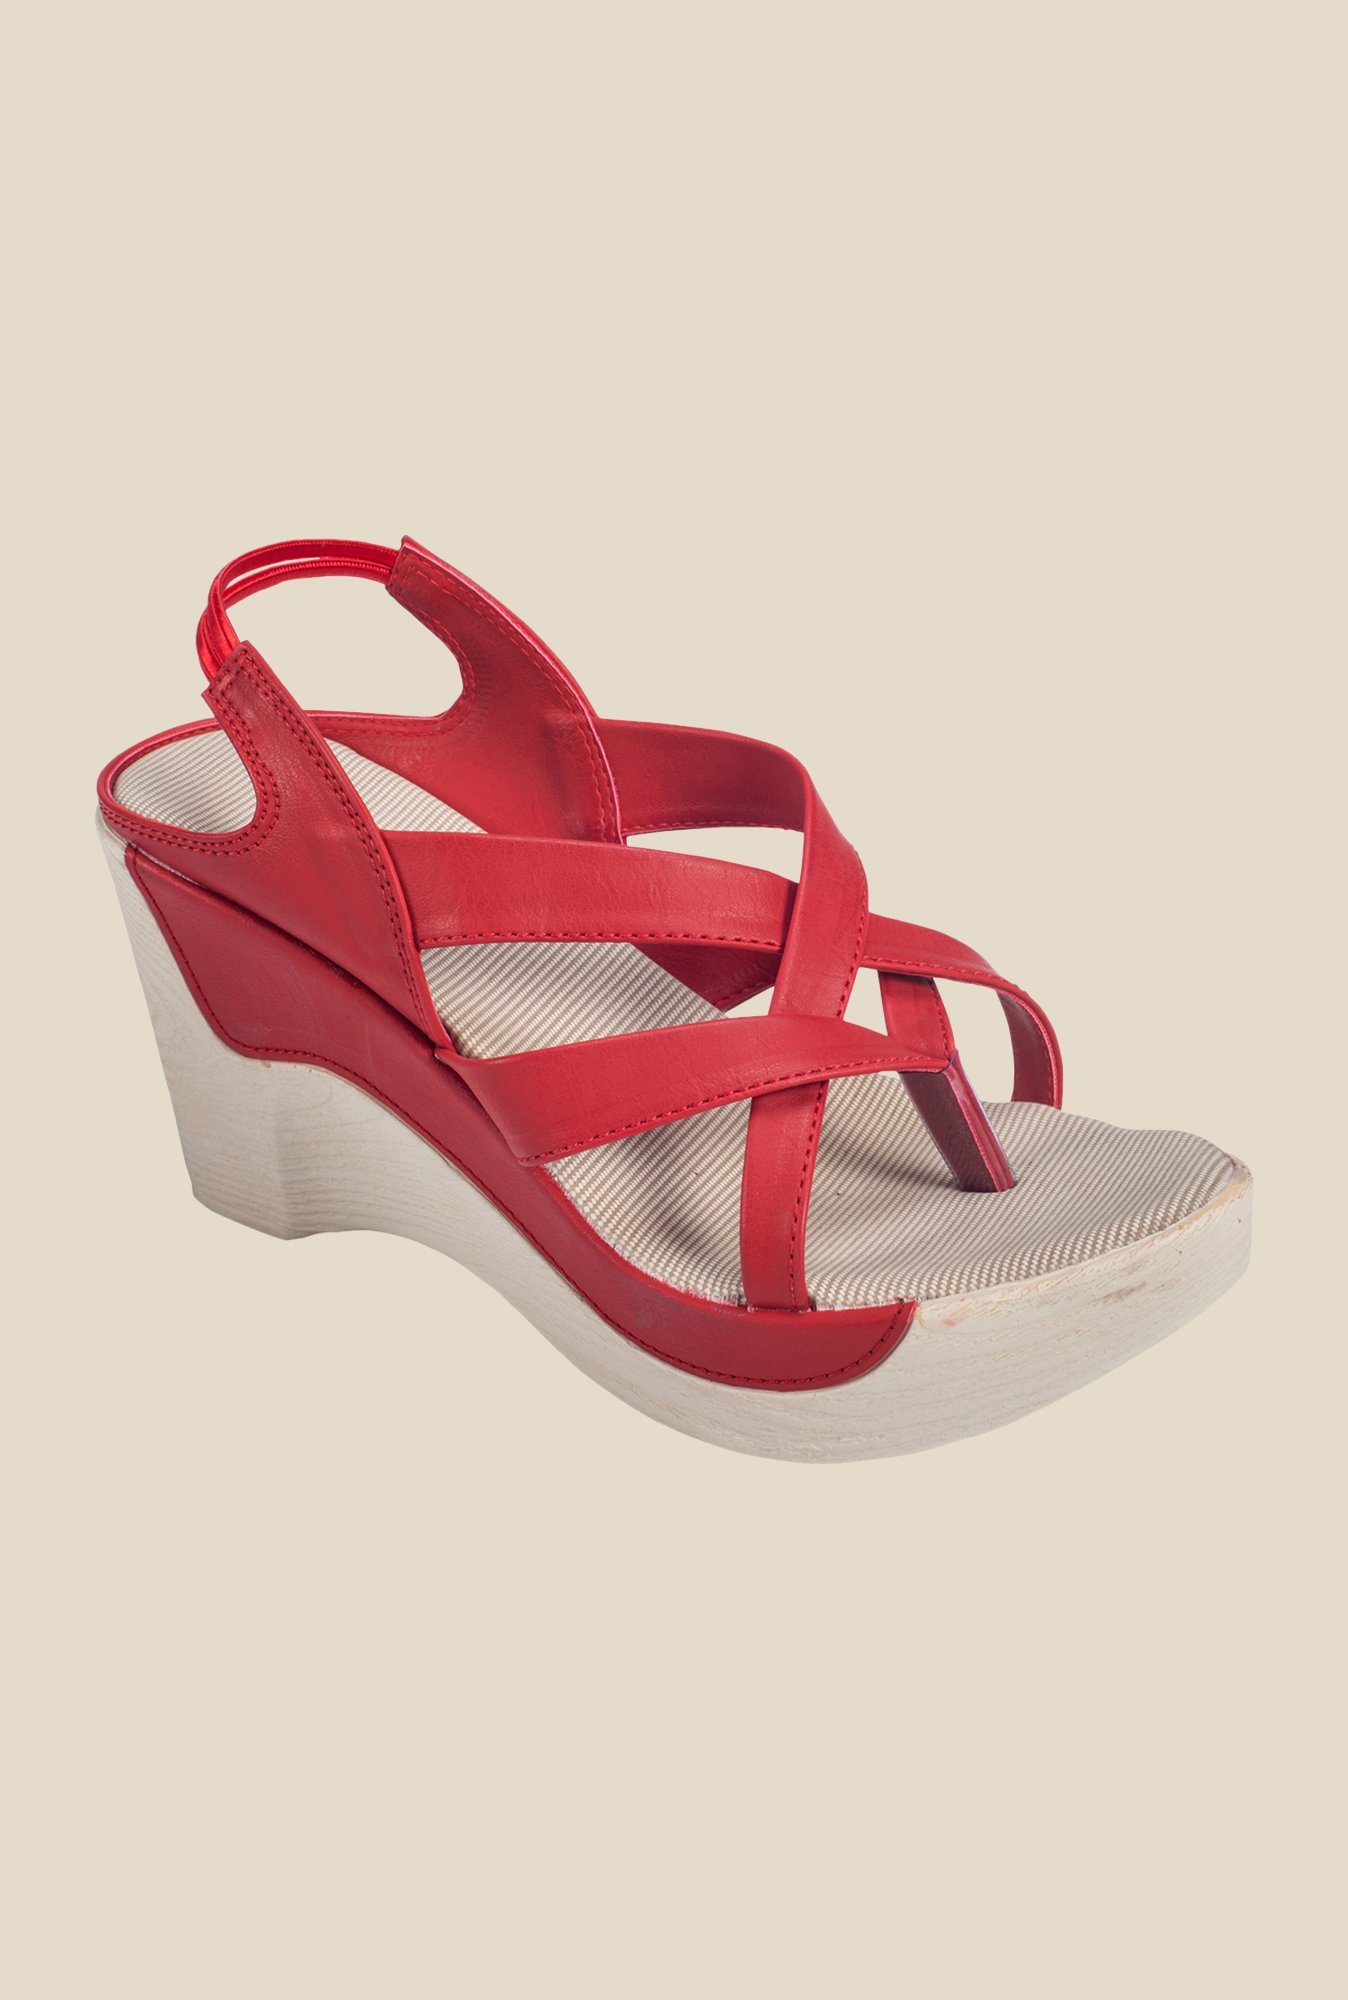 Khadim's Red Sling Back Wedges